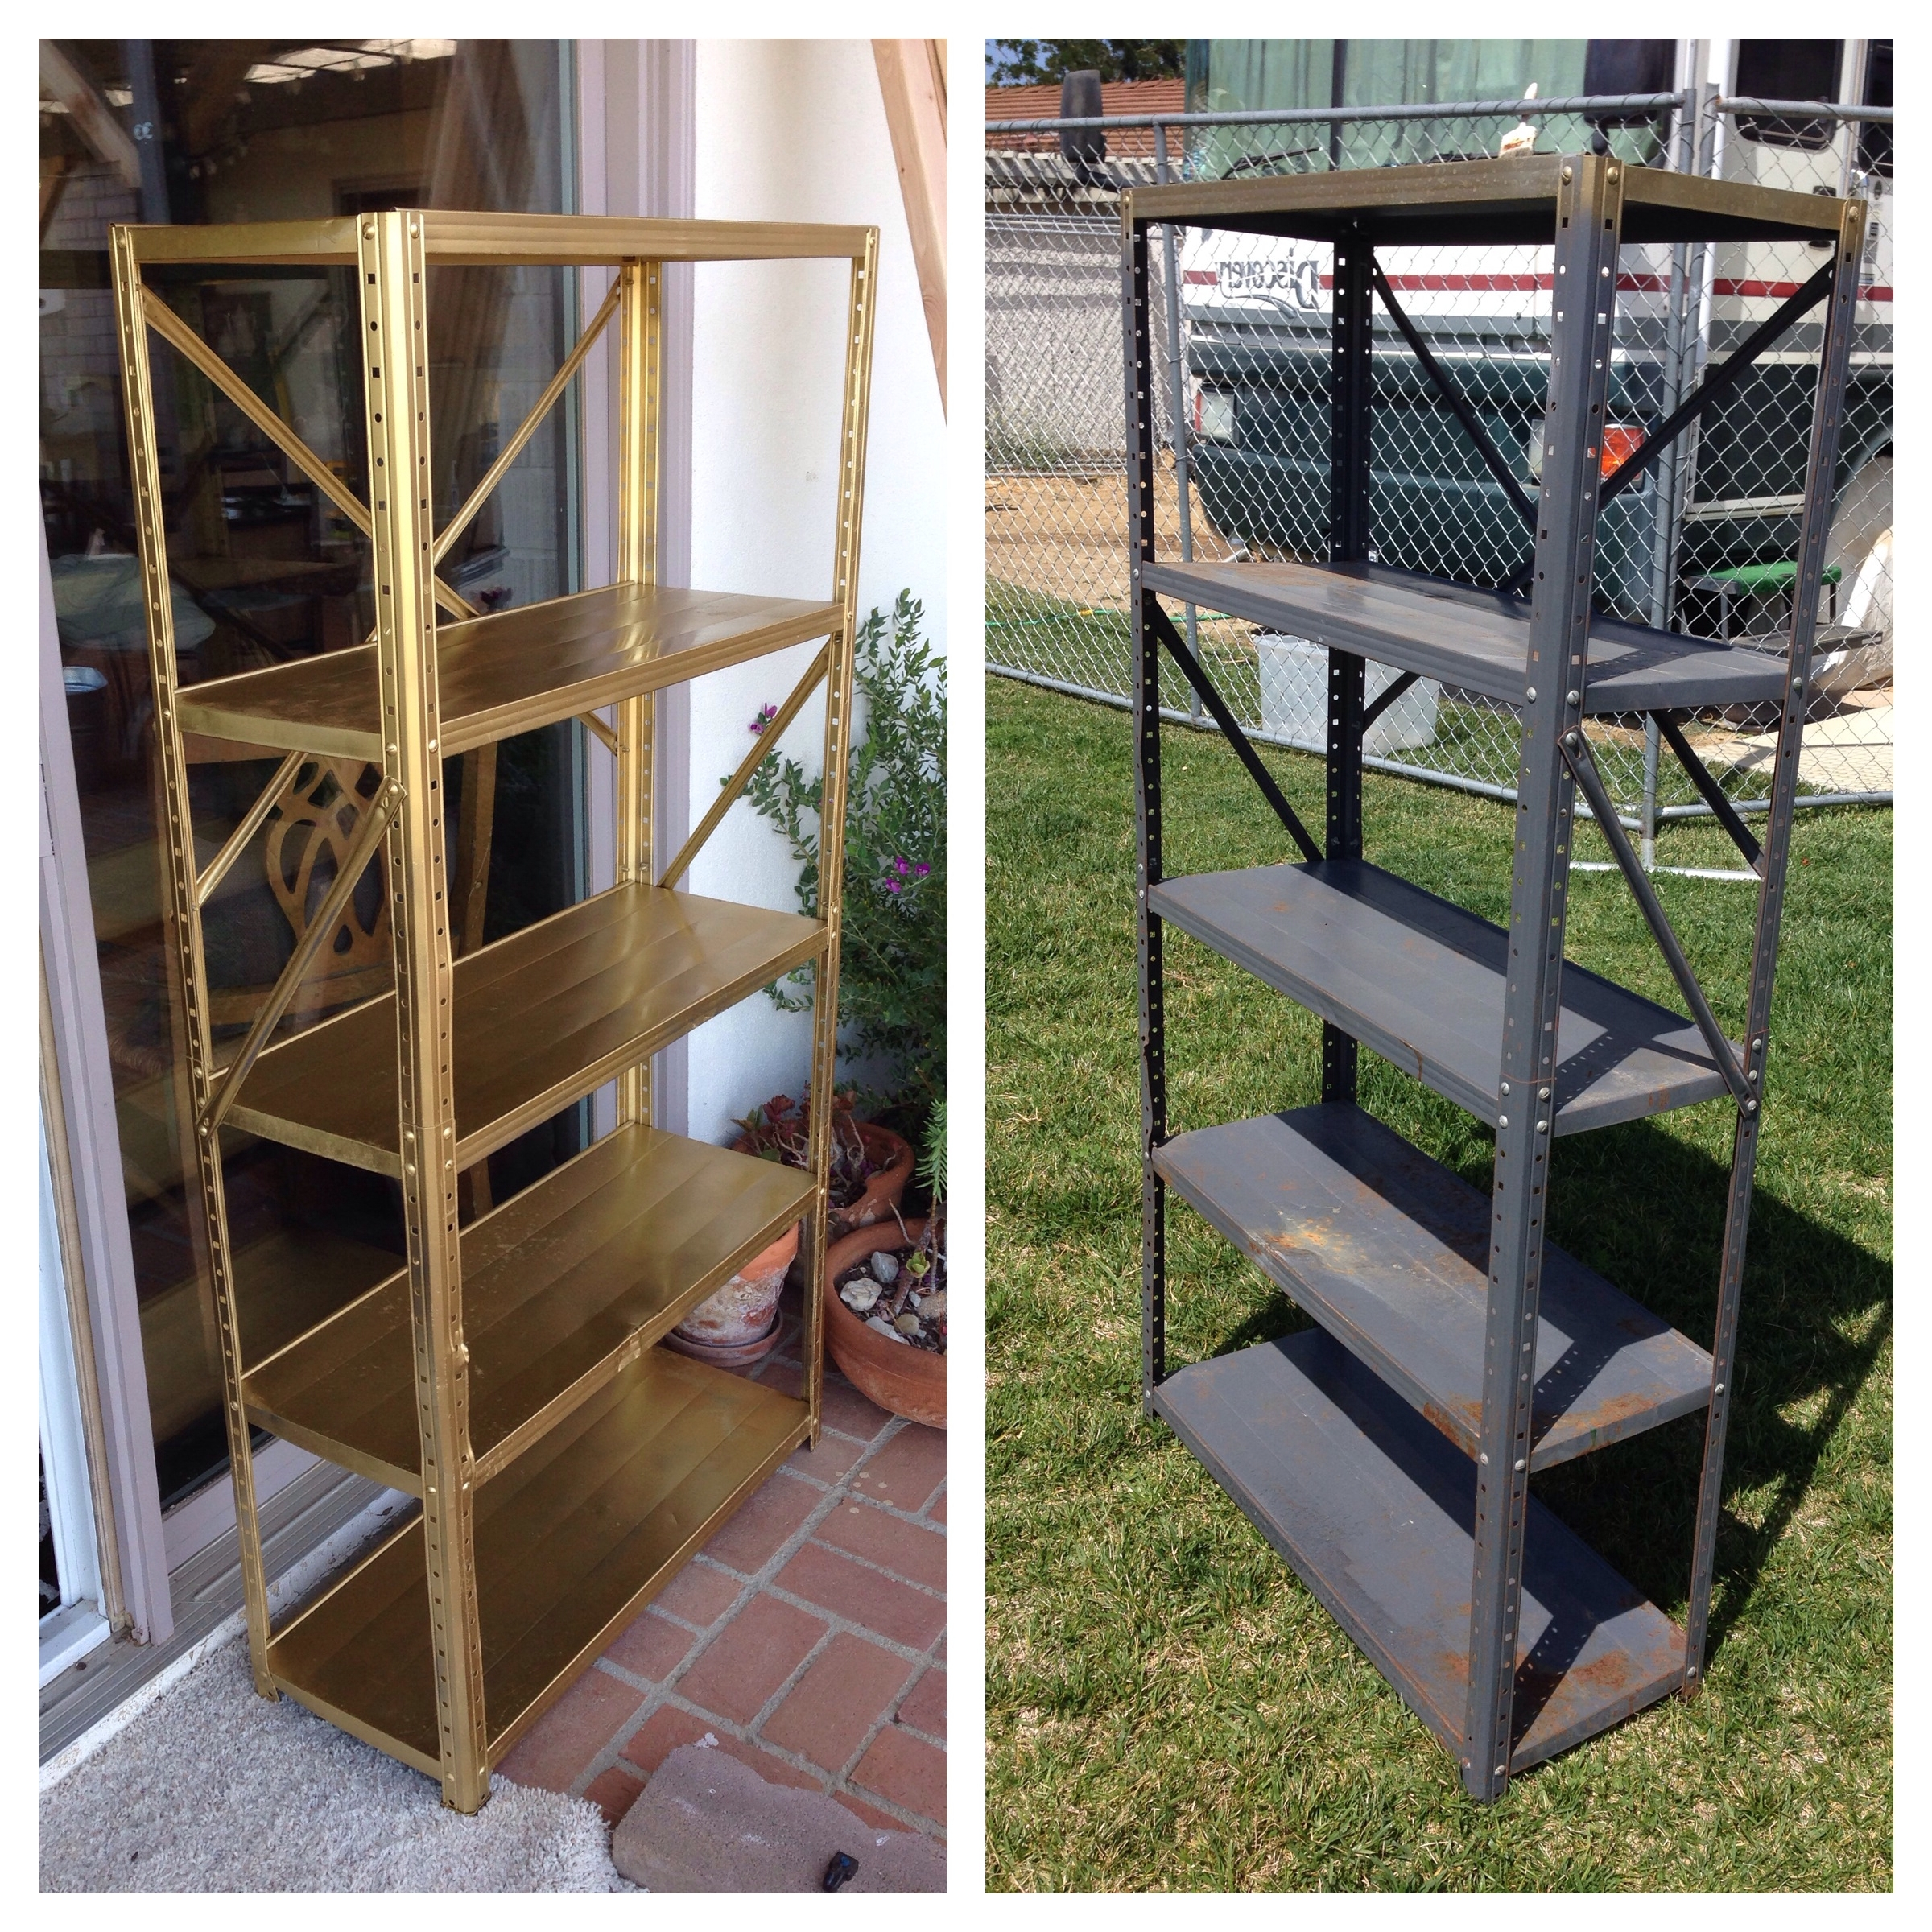 Best And Newest $5 Old Metal Shelf Transformed With Sandpaper And Gold Spray Paint With Regard To Gold Metal Bookcases (View 13 of 15)